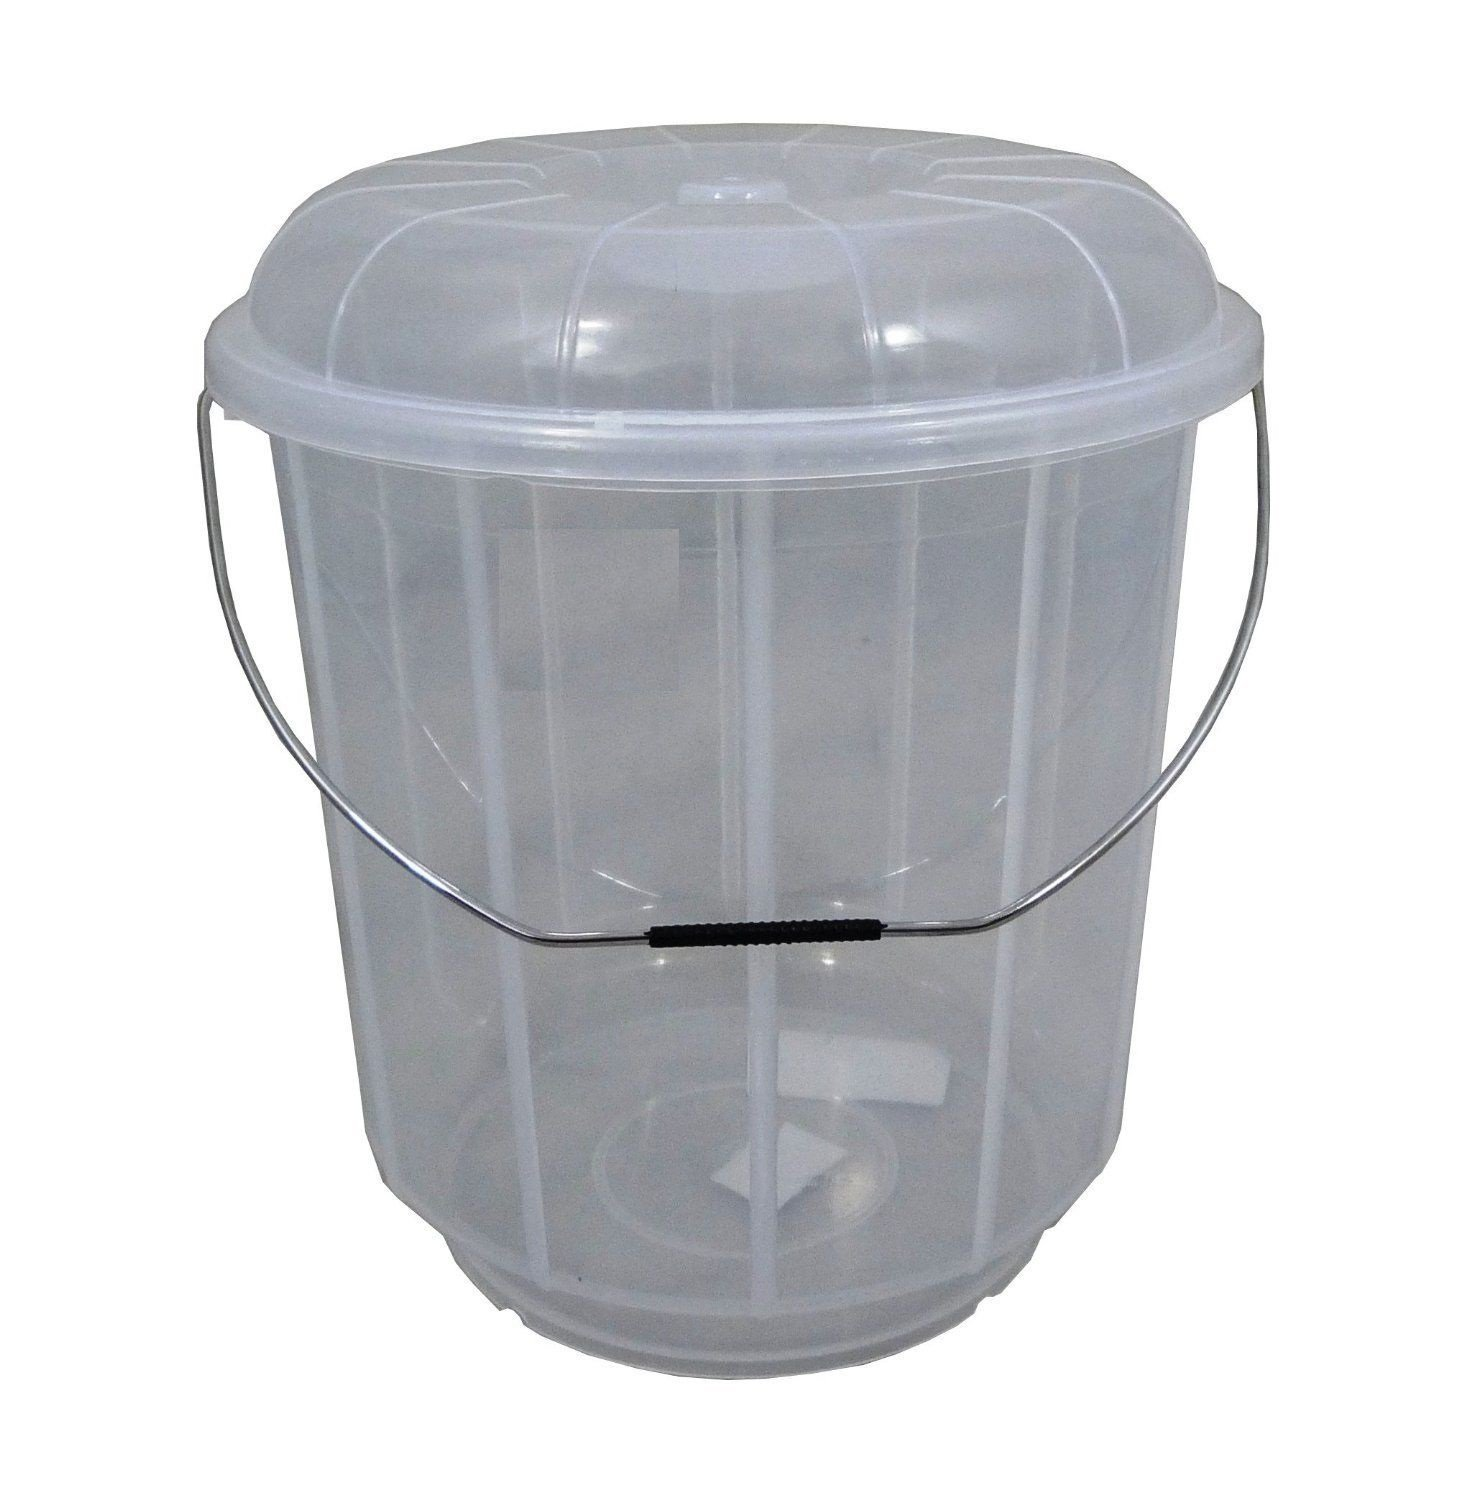 20L Litre Plastic Bucket With Lid Carry Handle Ideal for Pet Food / Animal Feed / Wild Bird Seed / Grain / Corn / Storage S&MC Gardenware